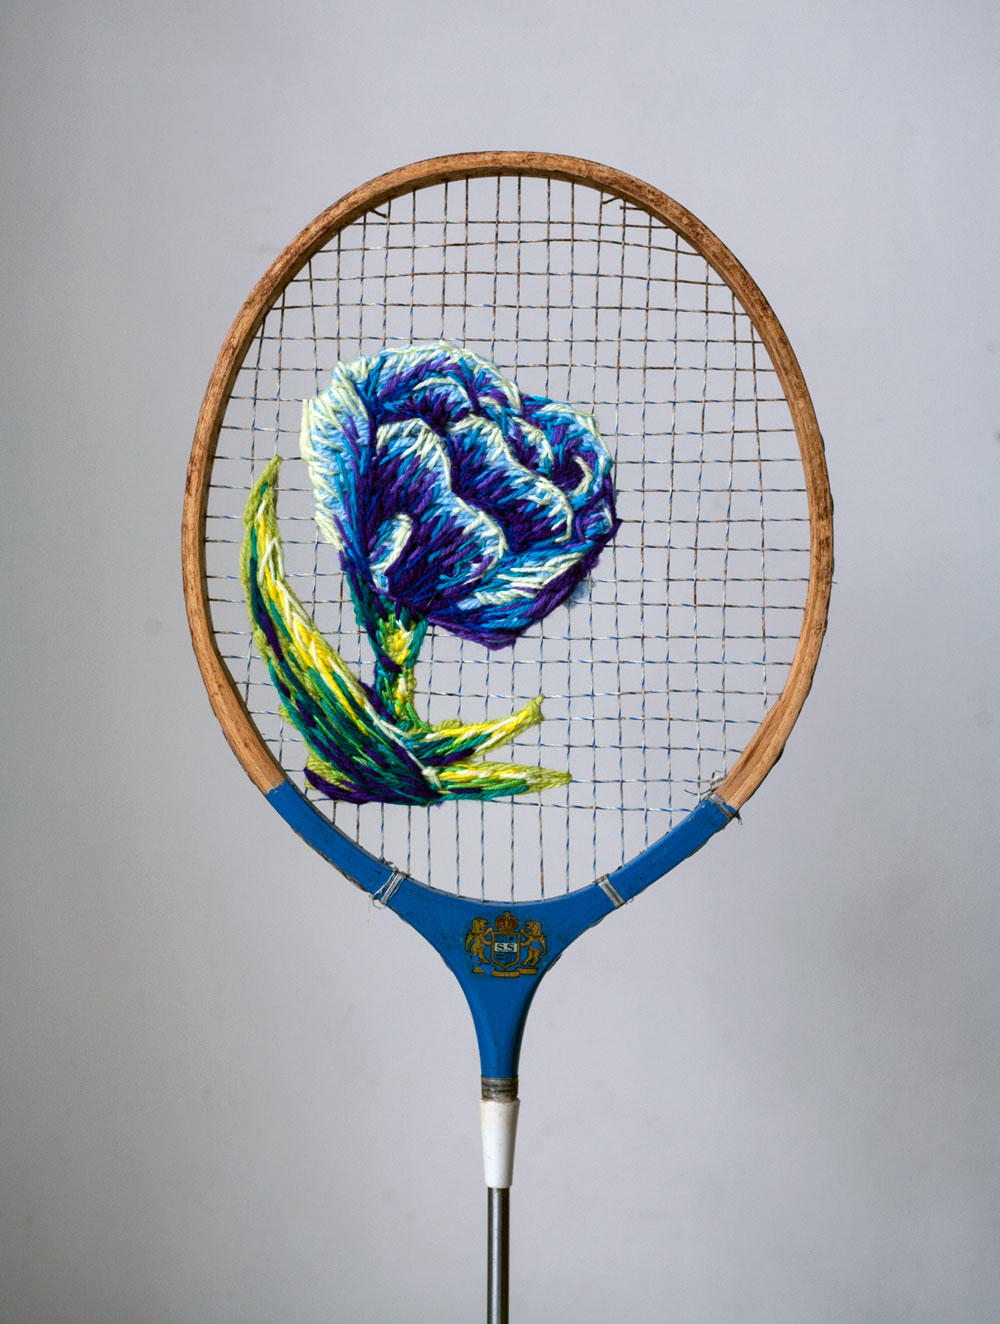 danielle_clough_tennis_racket_embroidery_03